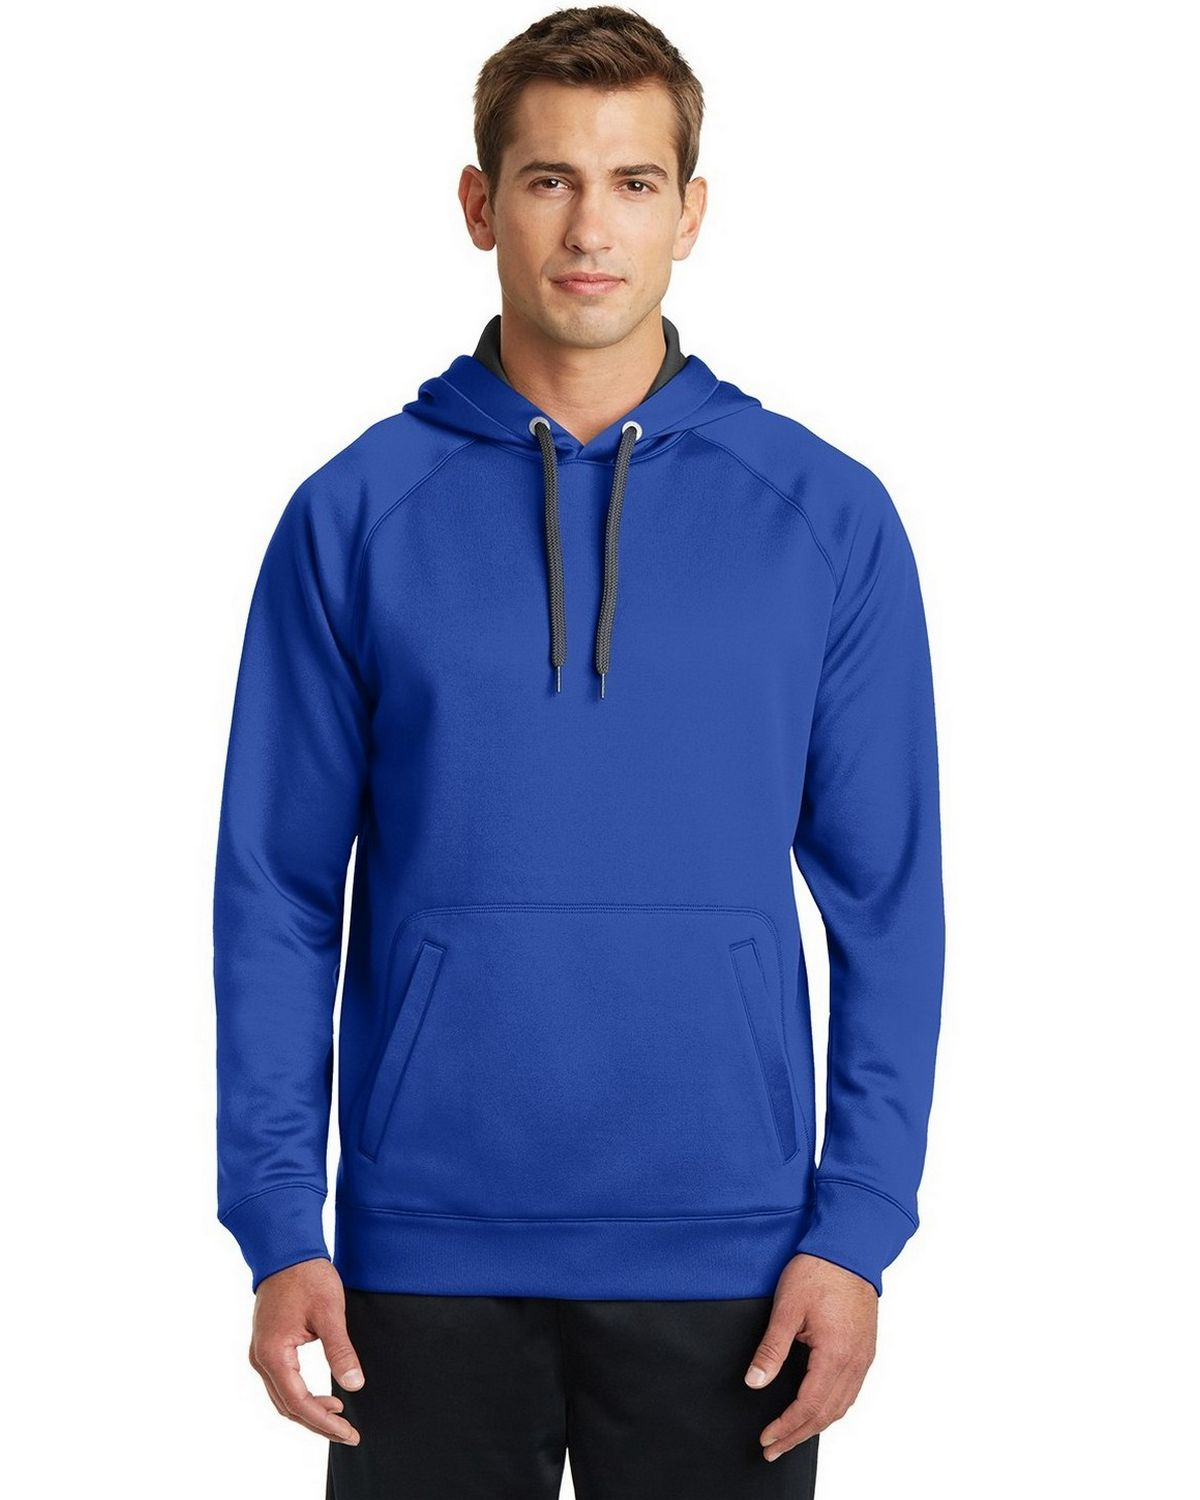 Sport-Tek ST250 Hooded Sweatshirt - True Royal - L ST250